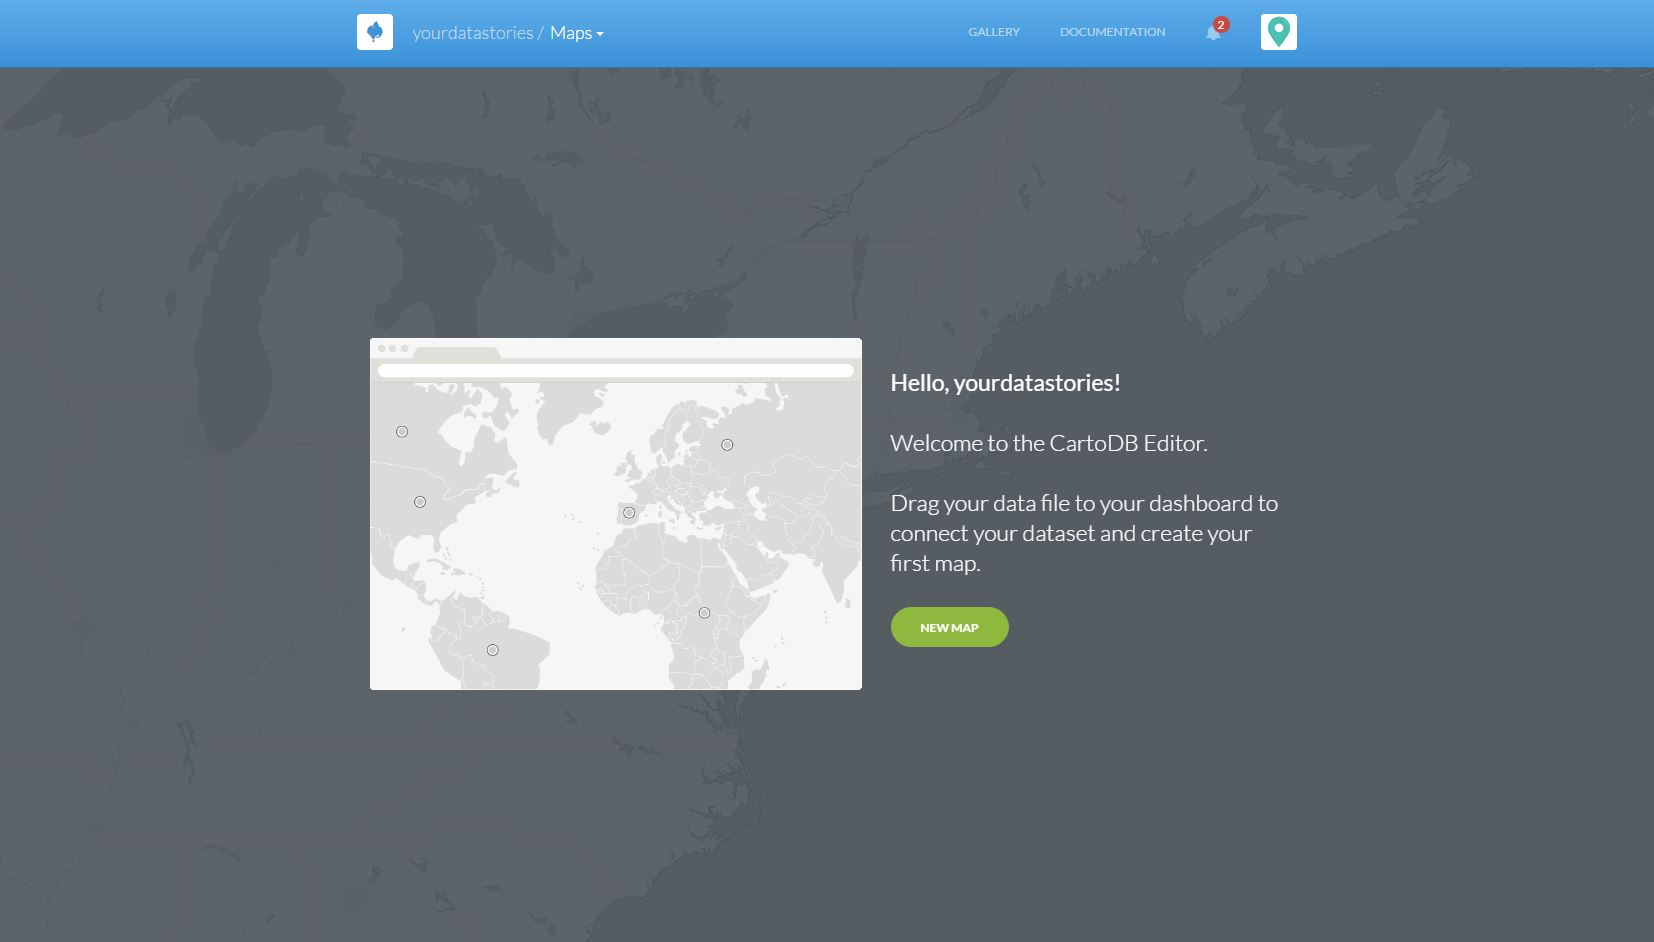 CartoDB Hello